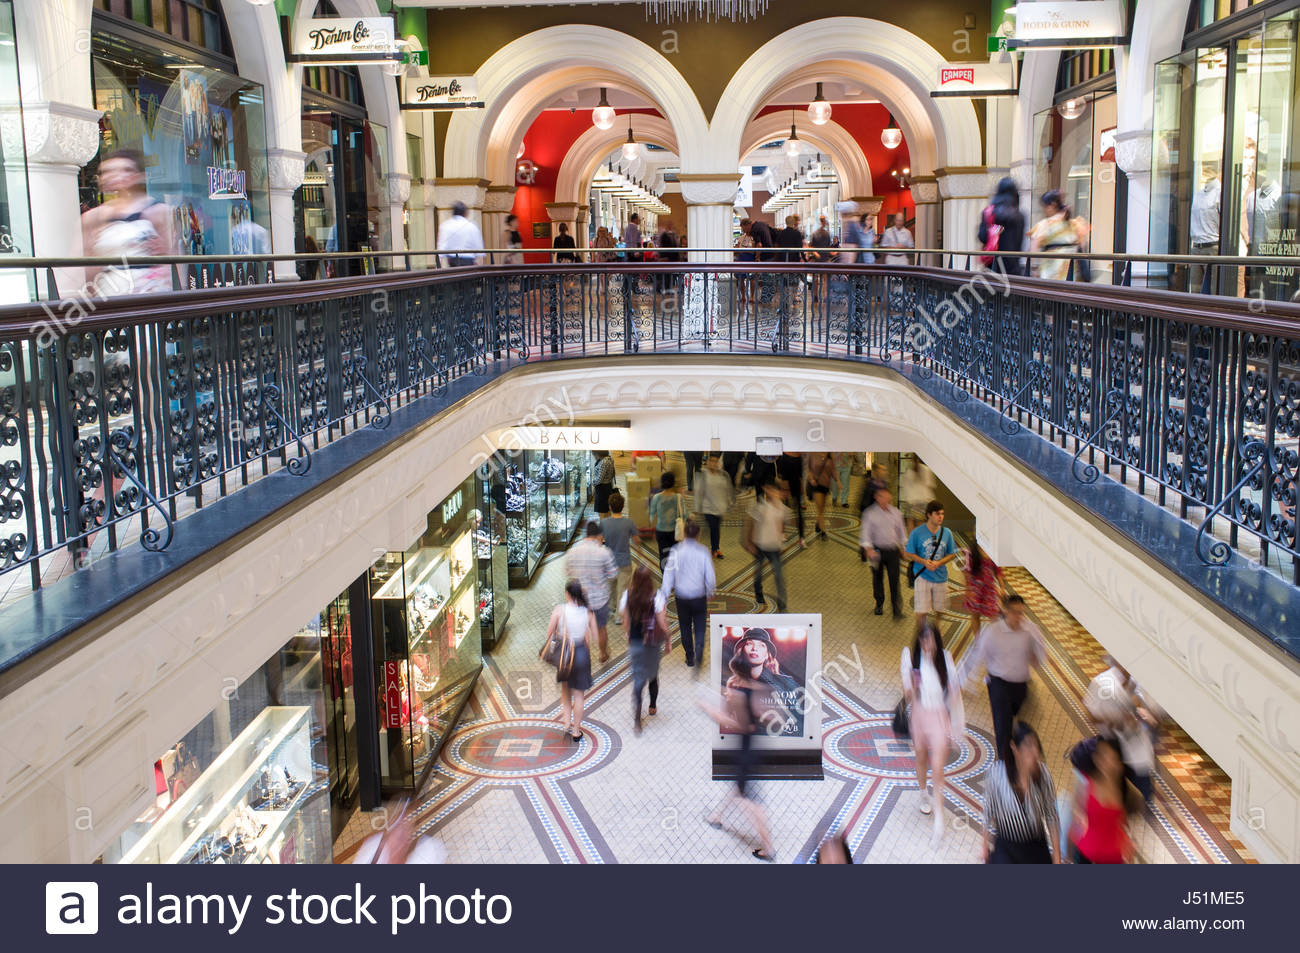 People shopping inside the Romanesque Revival styled Queen Victoria Building, Central Business District, Sydney, - Stock Image